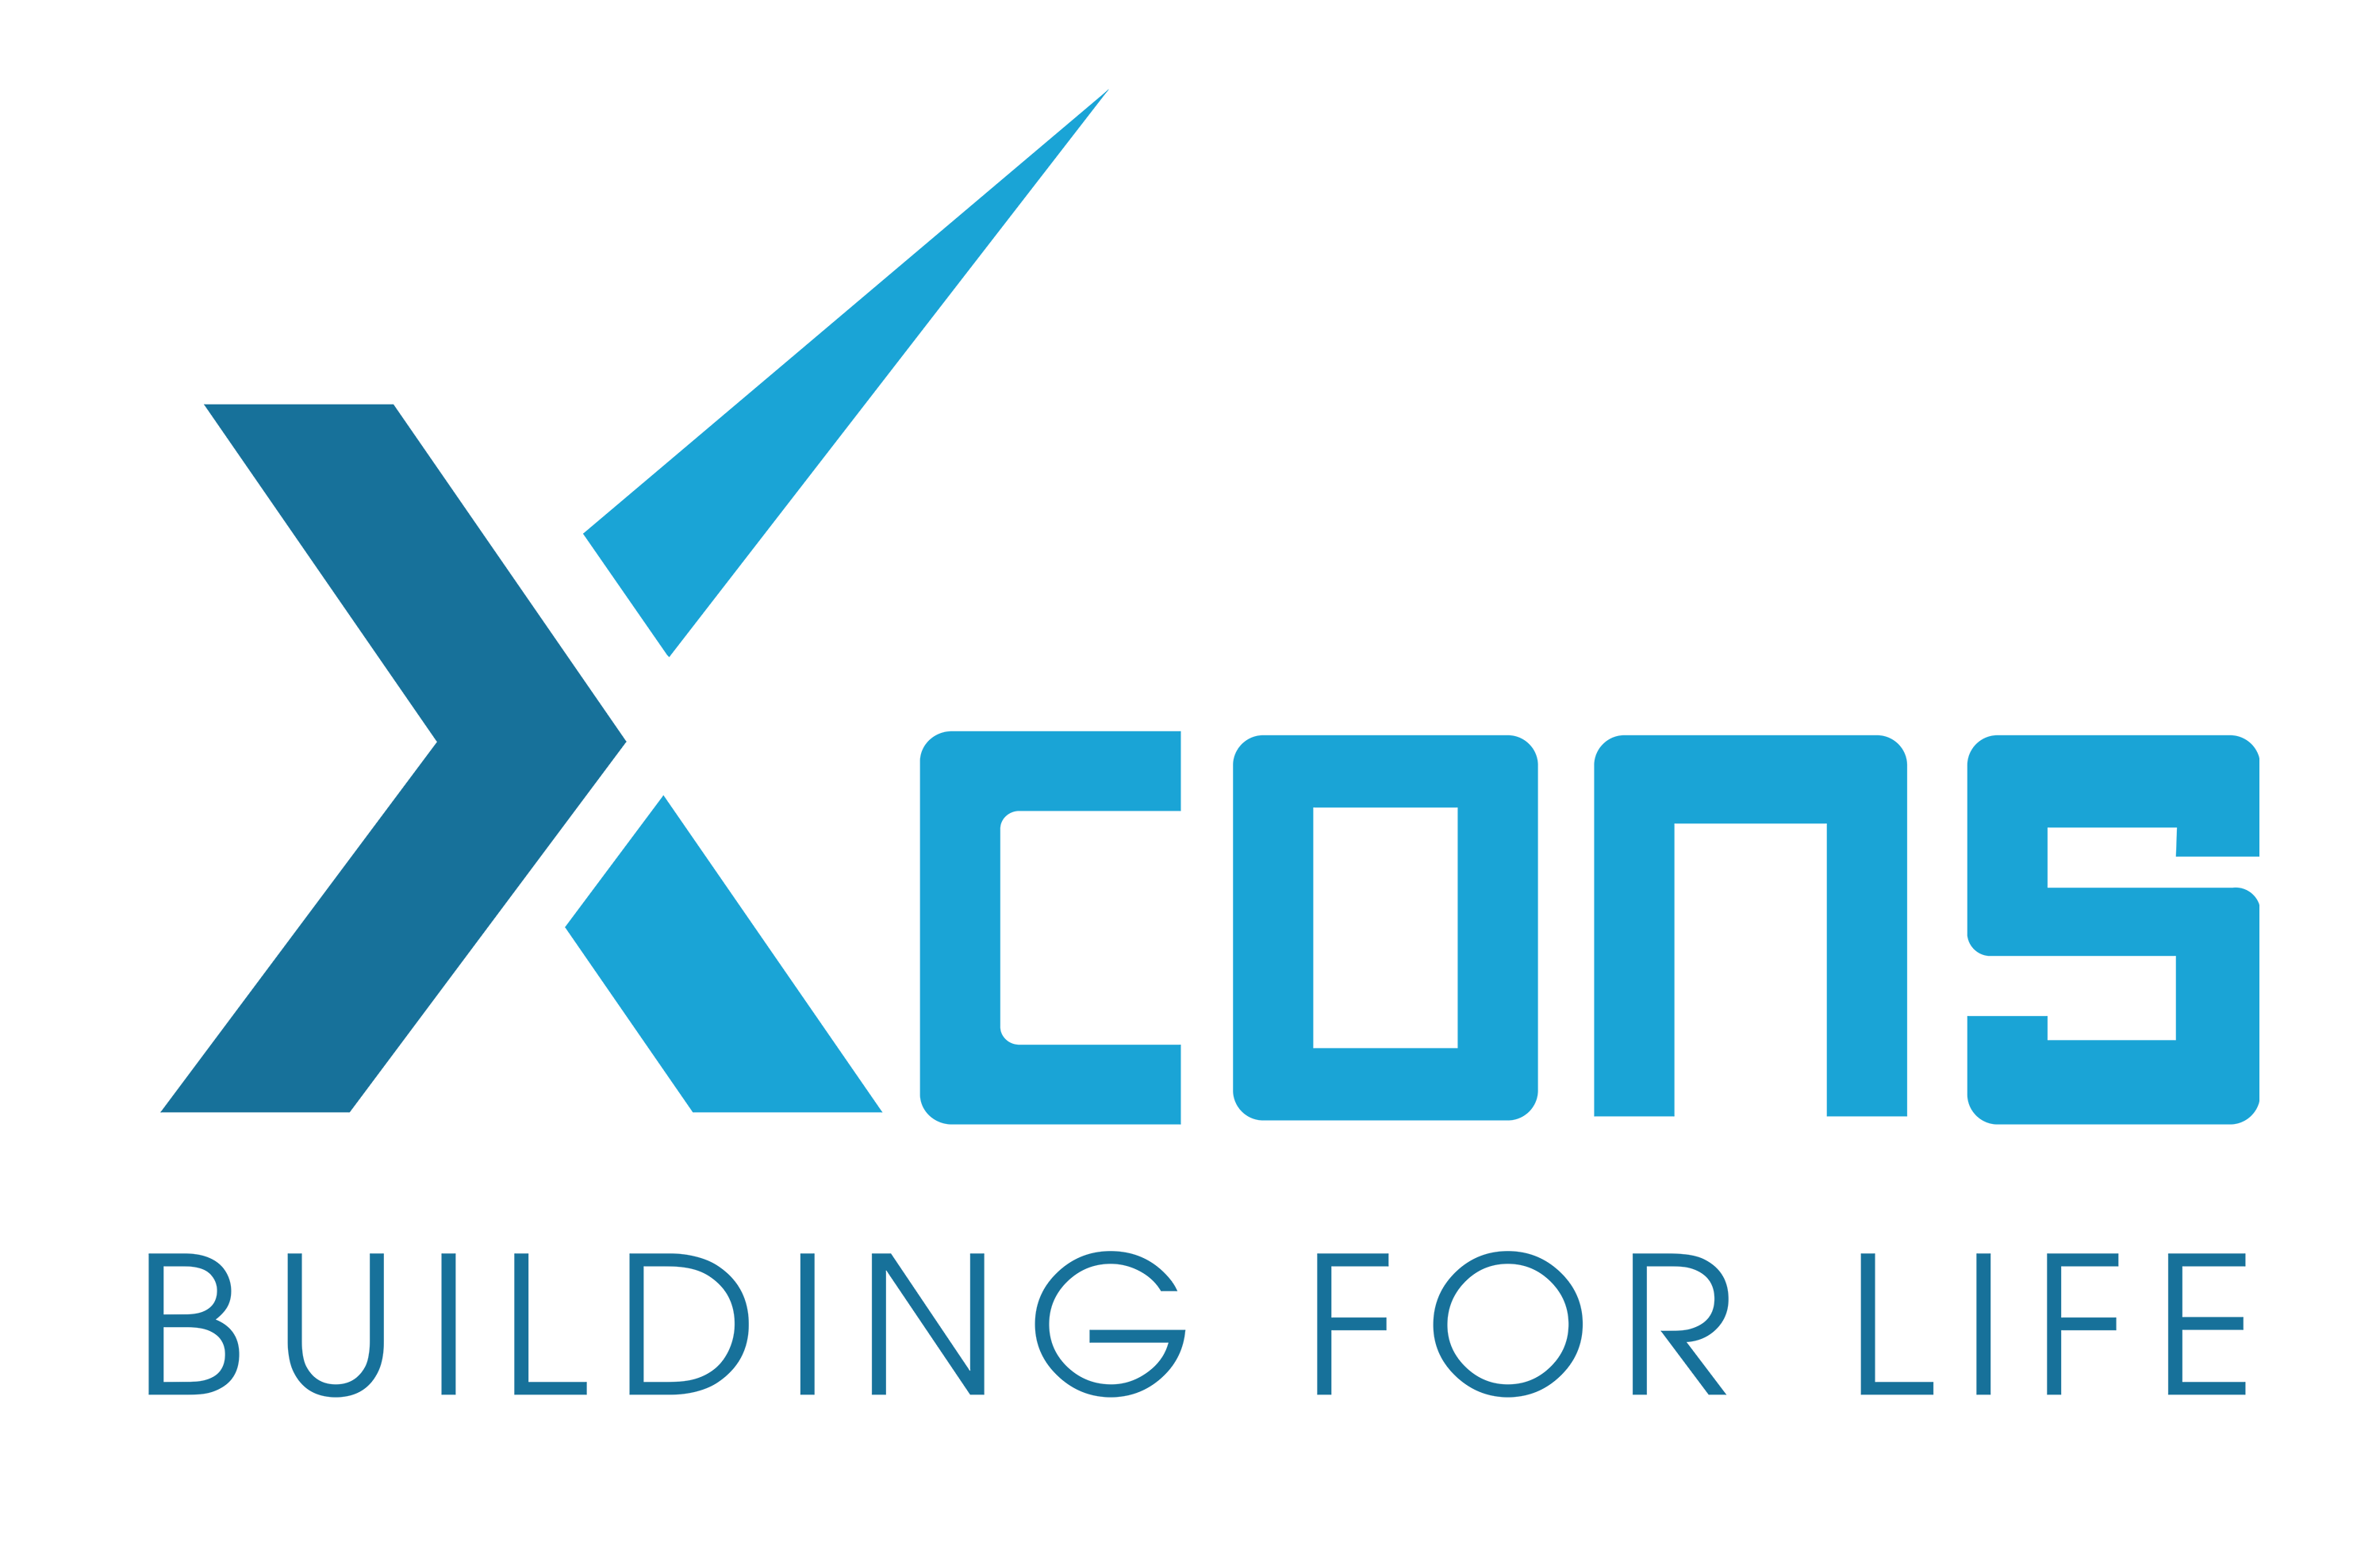 XCONS- BUILDING FOR LIFE